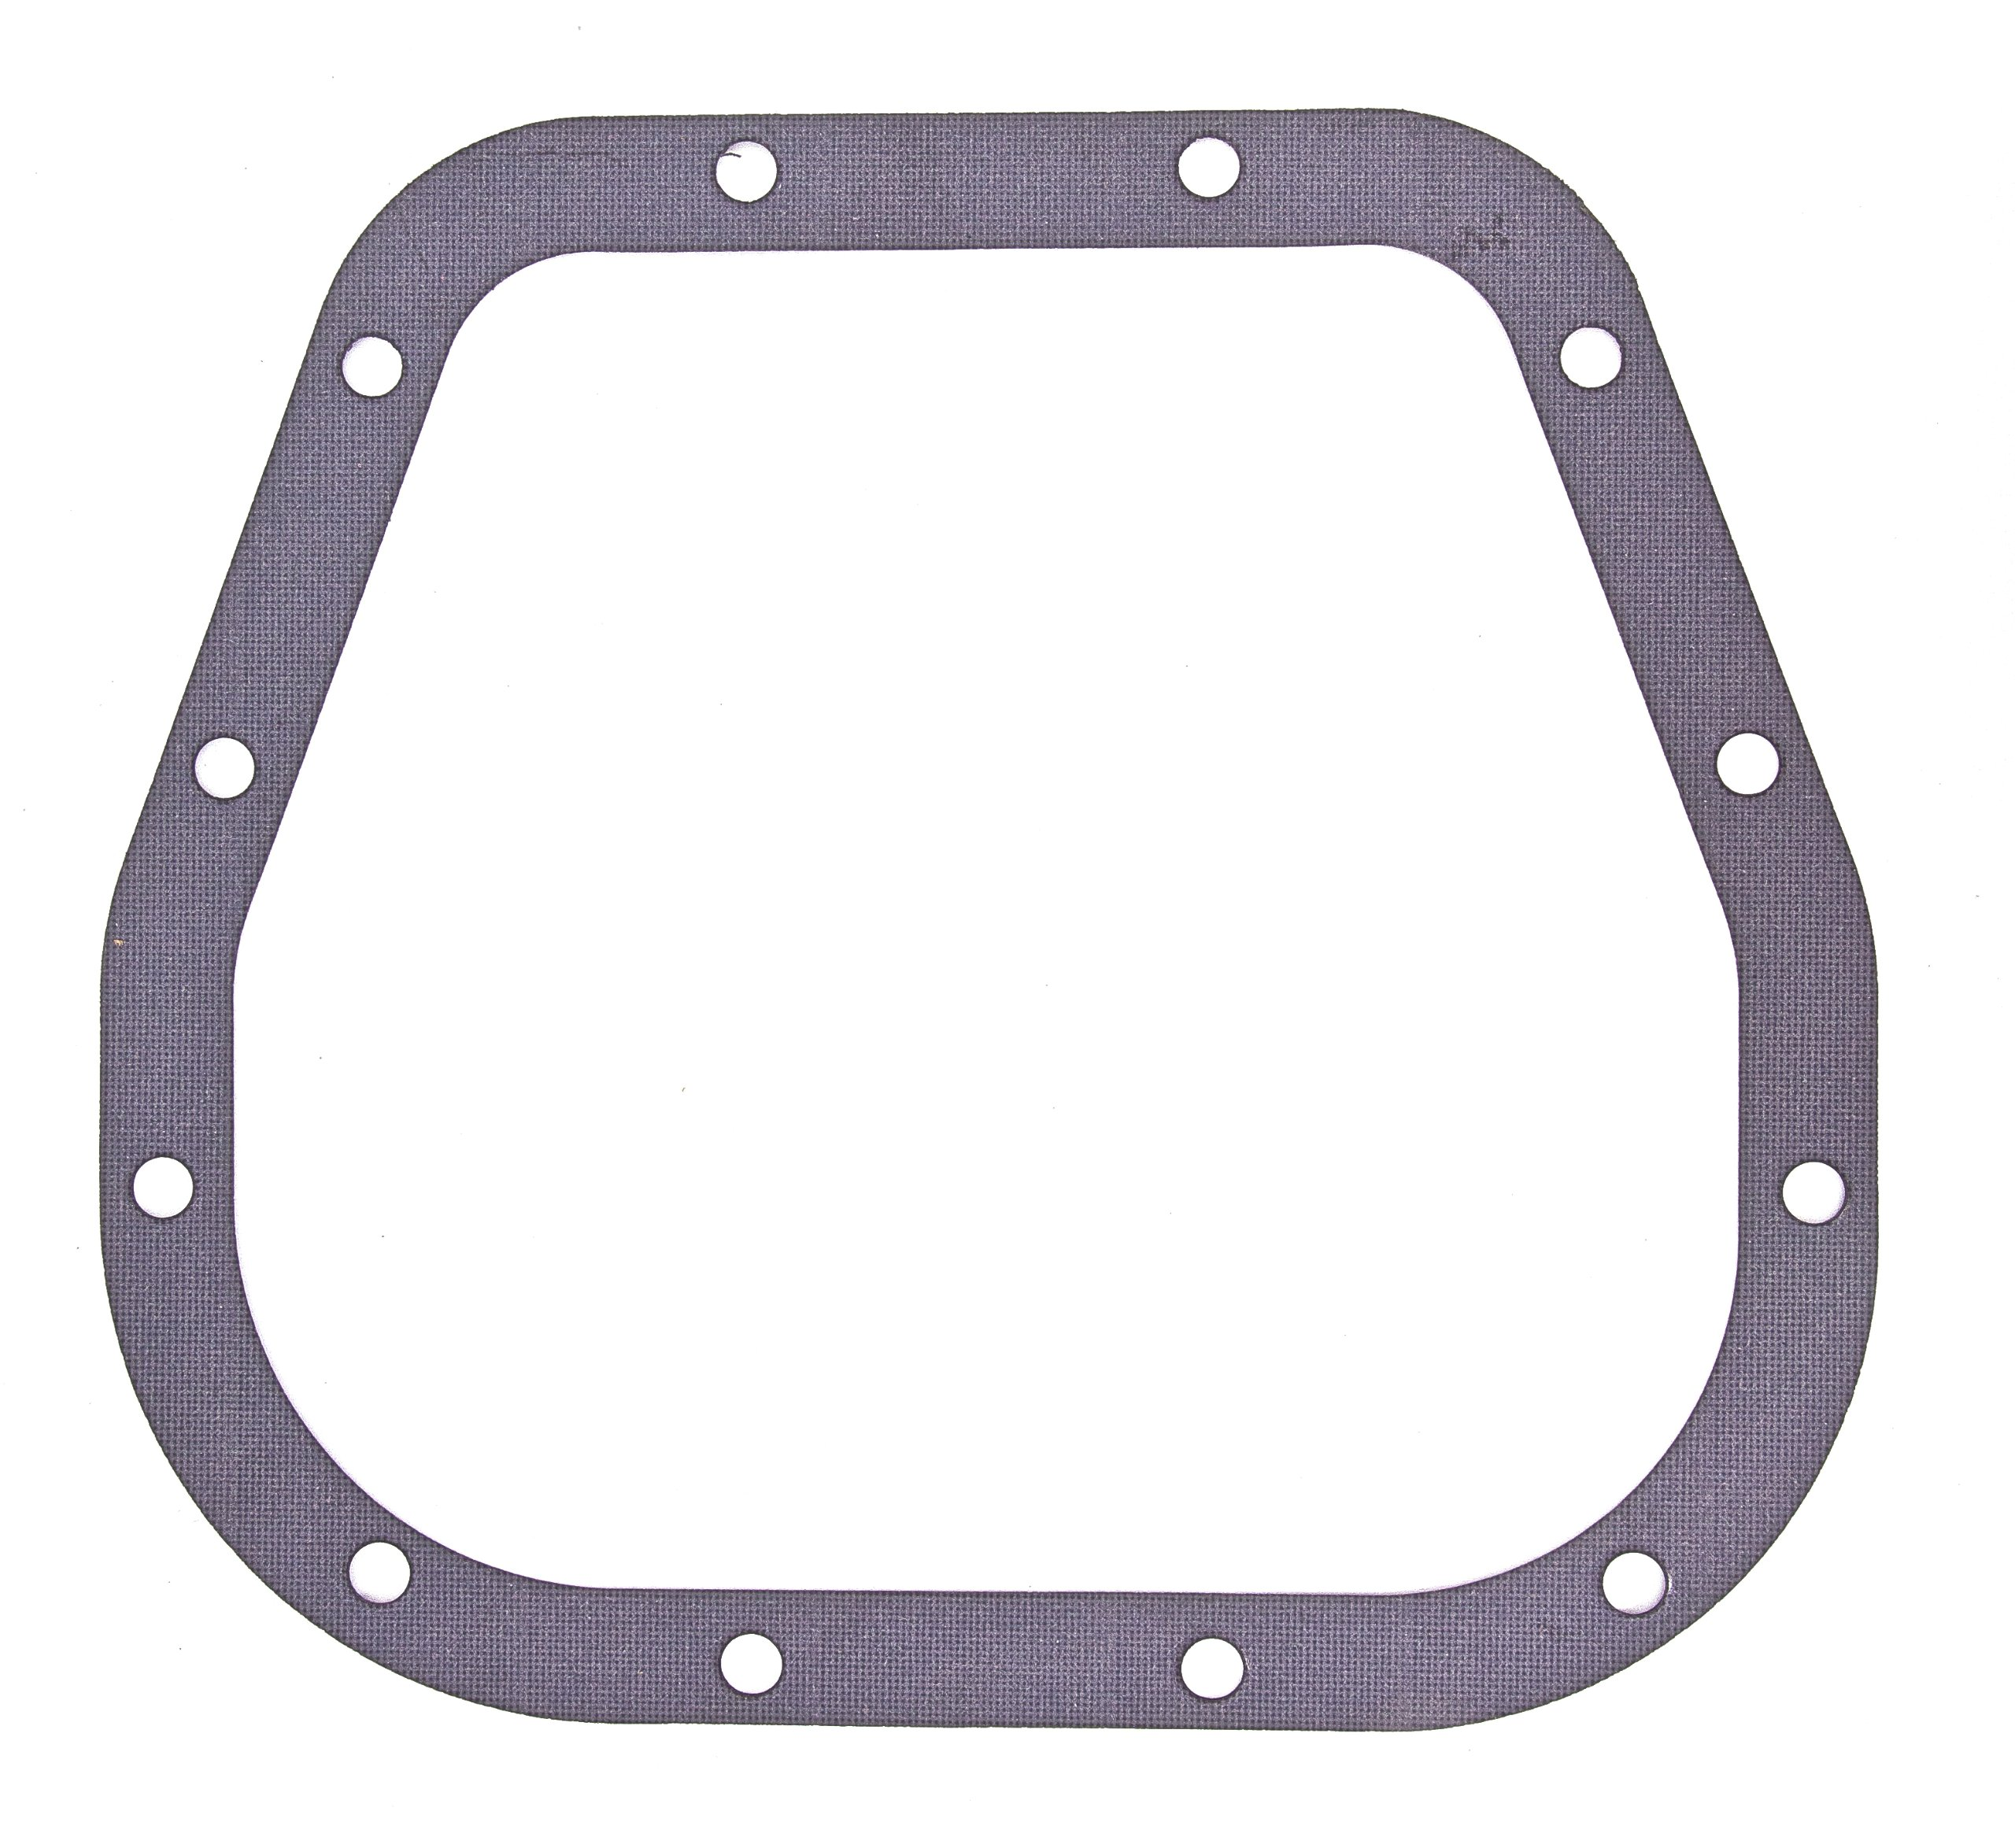 """Spicer RD52003 Differential Cover Gasket for Ford 9.75"""" Axle"""